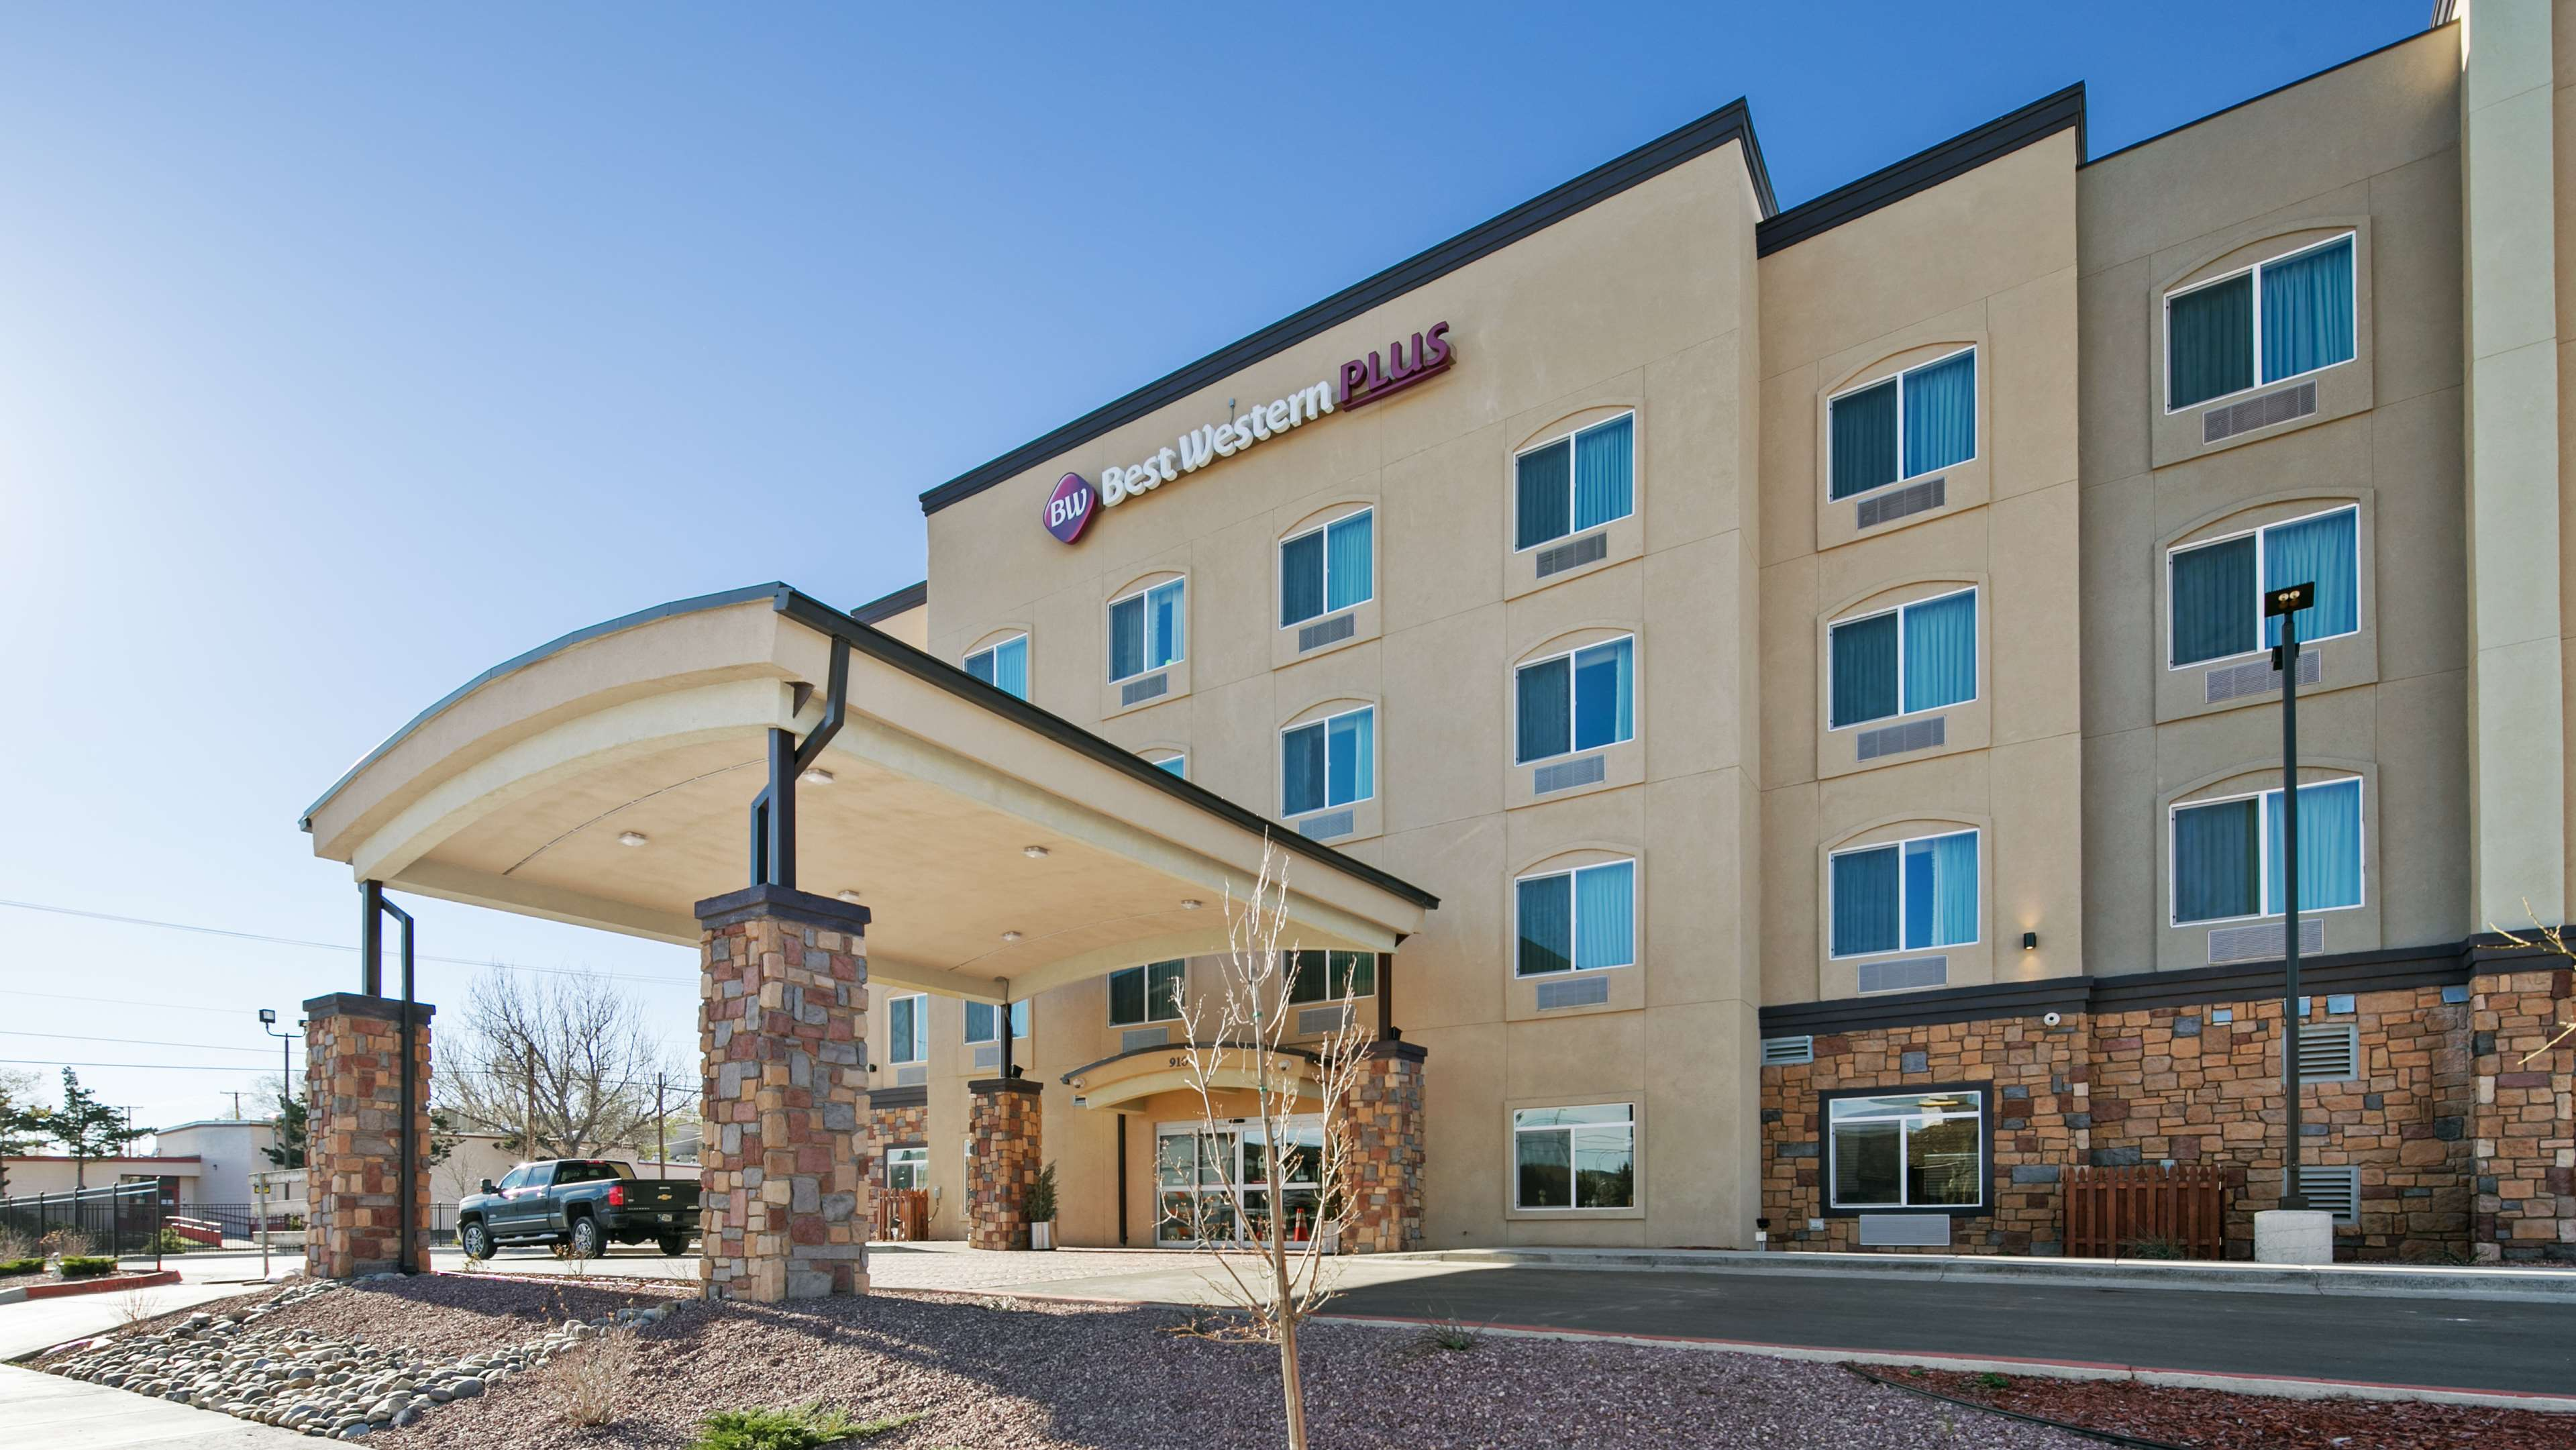 Gallup Nm Hotels And Motels